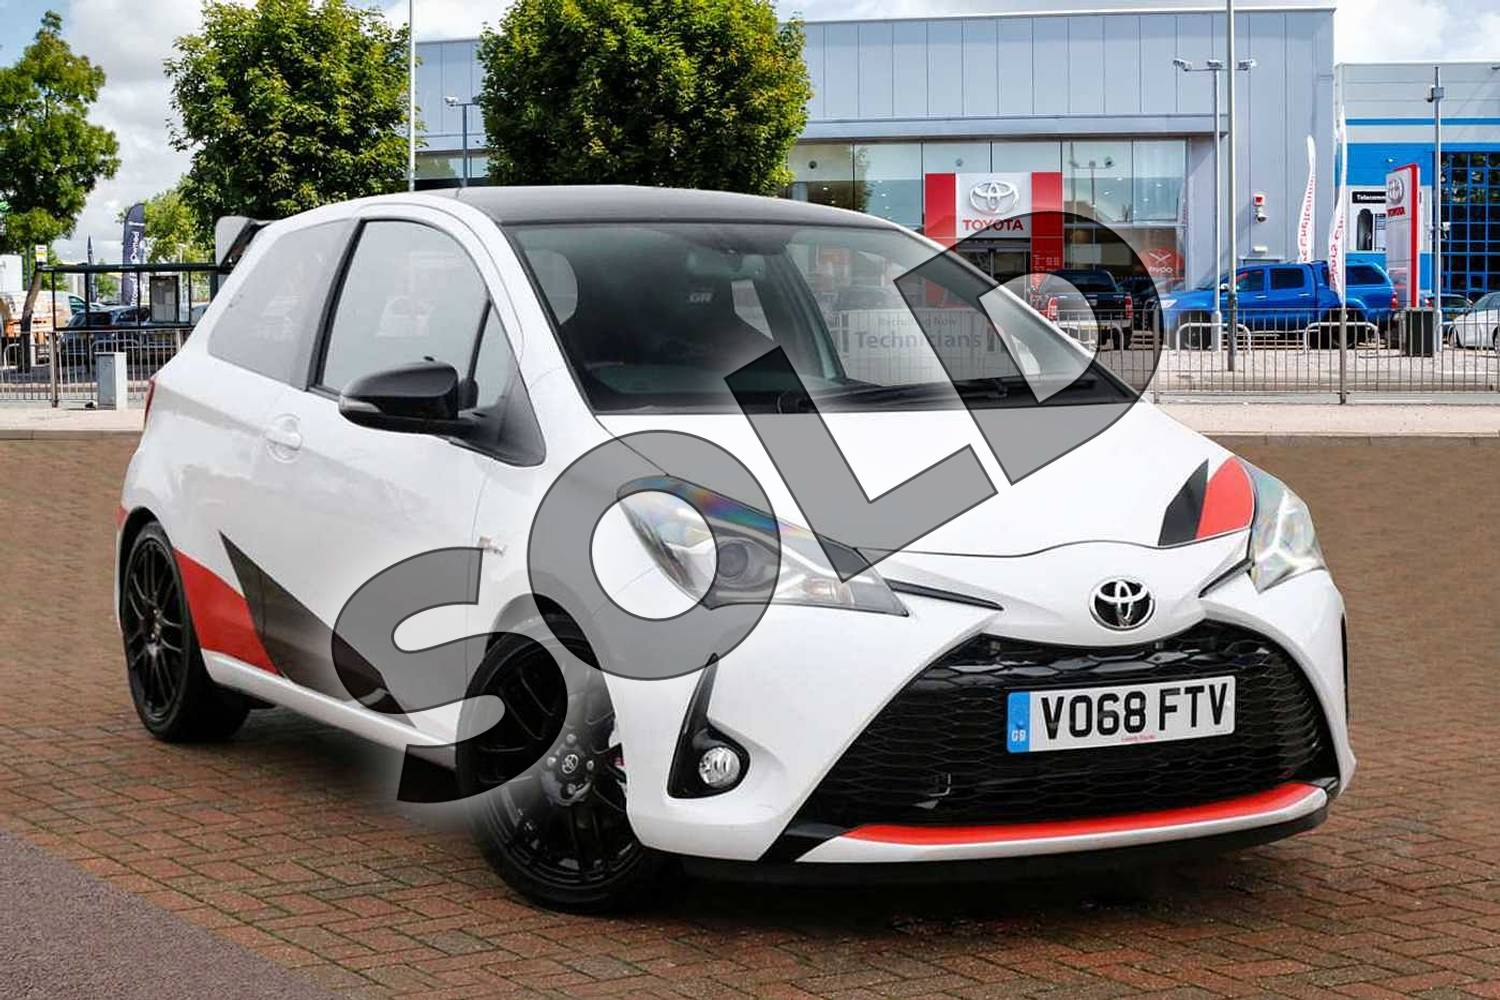 2018 Toyota Yaris Hatchback Special Editions Special Editions 1.8 Supercharged GRMN Edition 3dr in White/Black at Listers Toyota Cheltenham